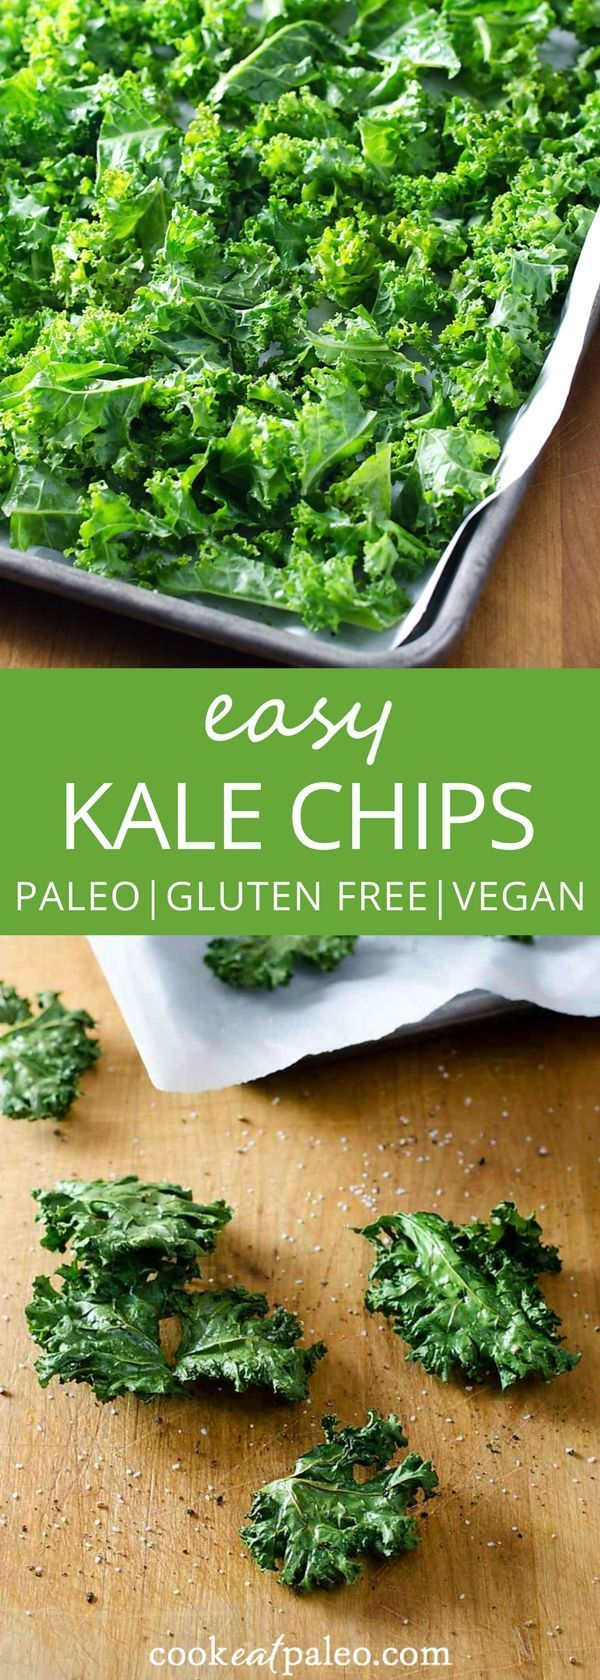 How to make kale chips---a quick and easy healthy snack to satisfy your crunchy craving. | vegan, gluten-free, paleo recipe | http://cookeatpaleo.com/how-to-make-kale-chips/